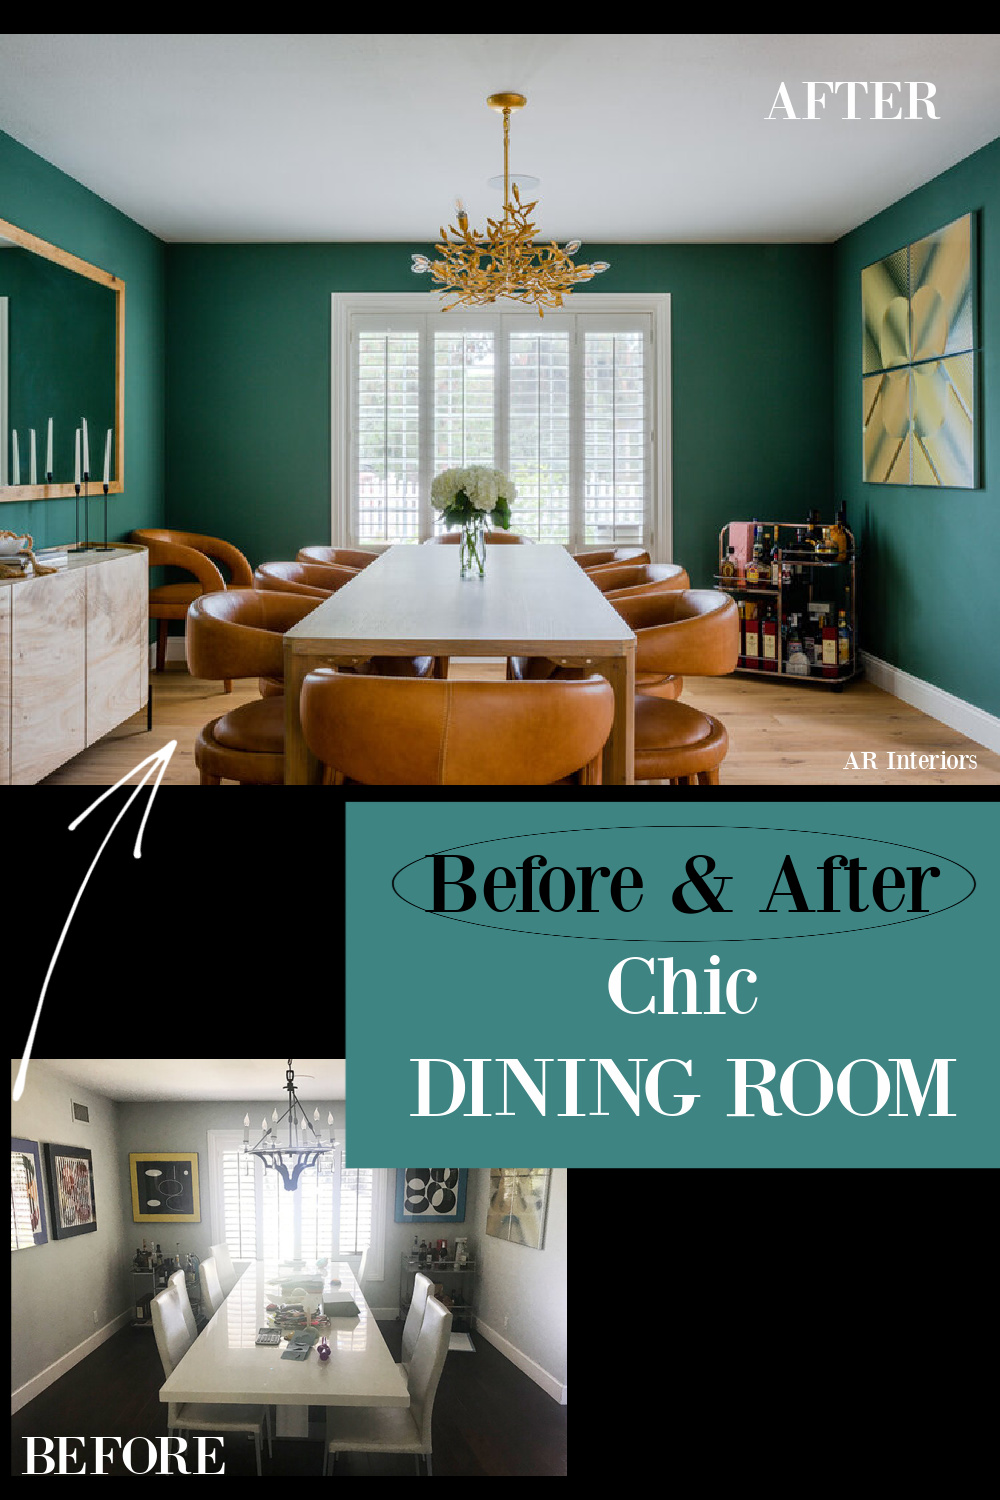 Before & After Chic Dining room with teal walls and modern leather chairs - AR Interiors (Anna Rosemann). #diningrooms #beforeandafter #tealwalls